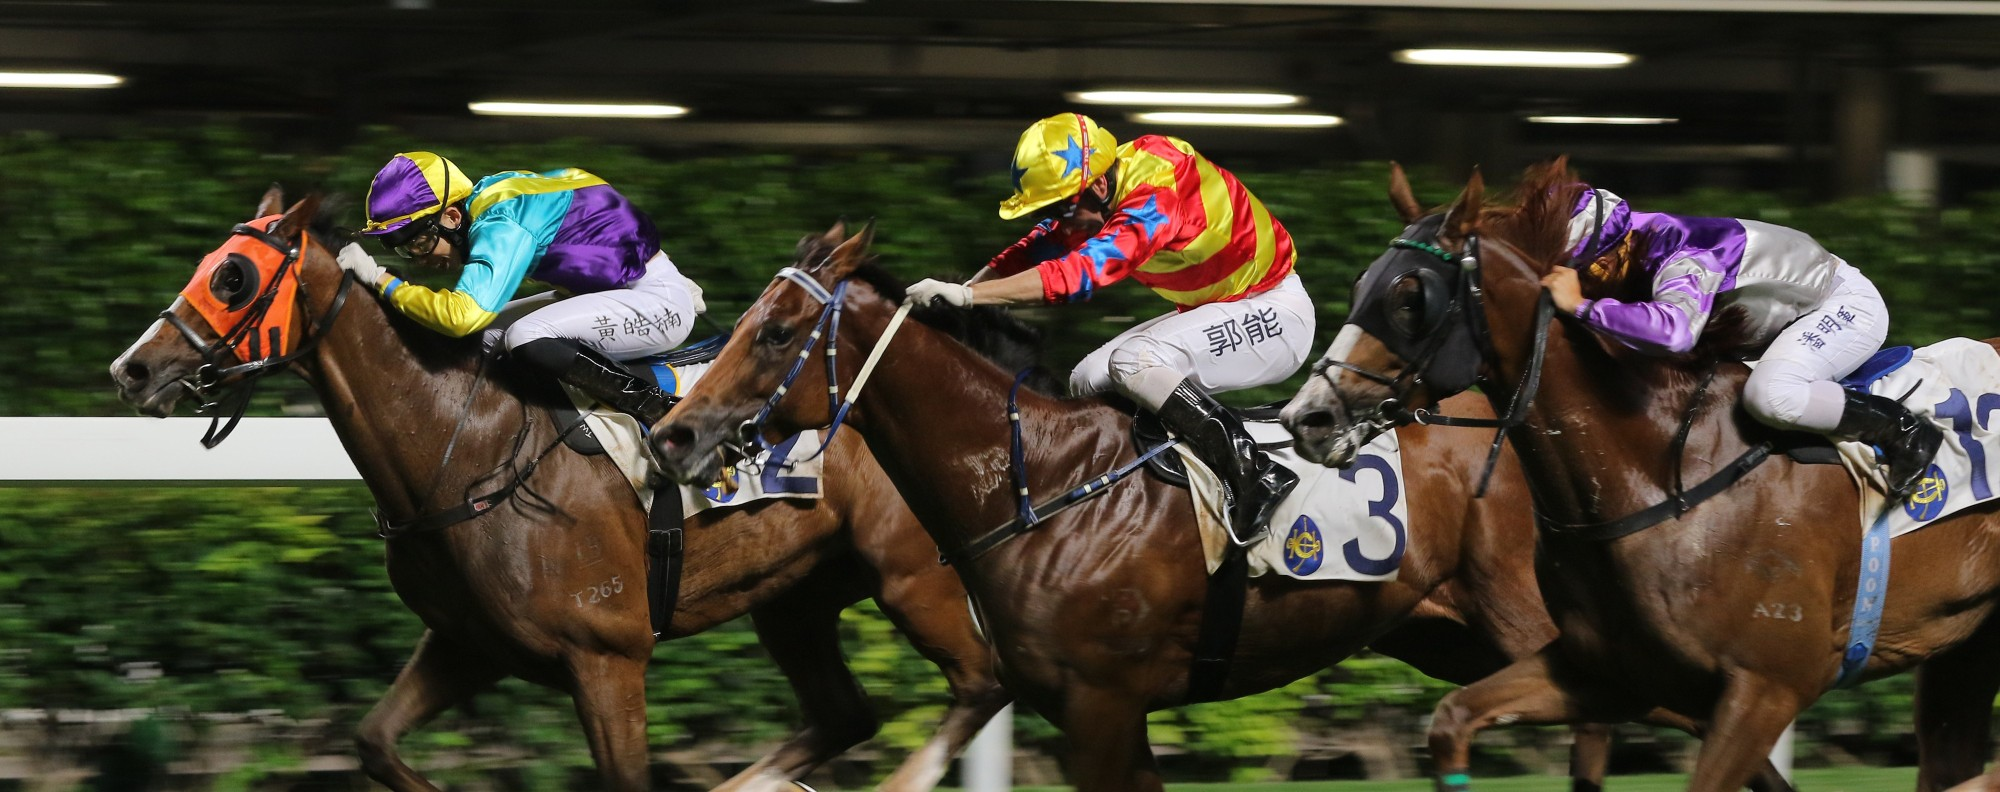 A race at Happy Valley, in Hong Kong, in May.